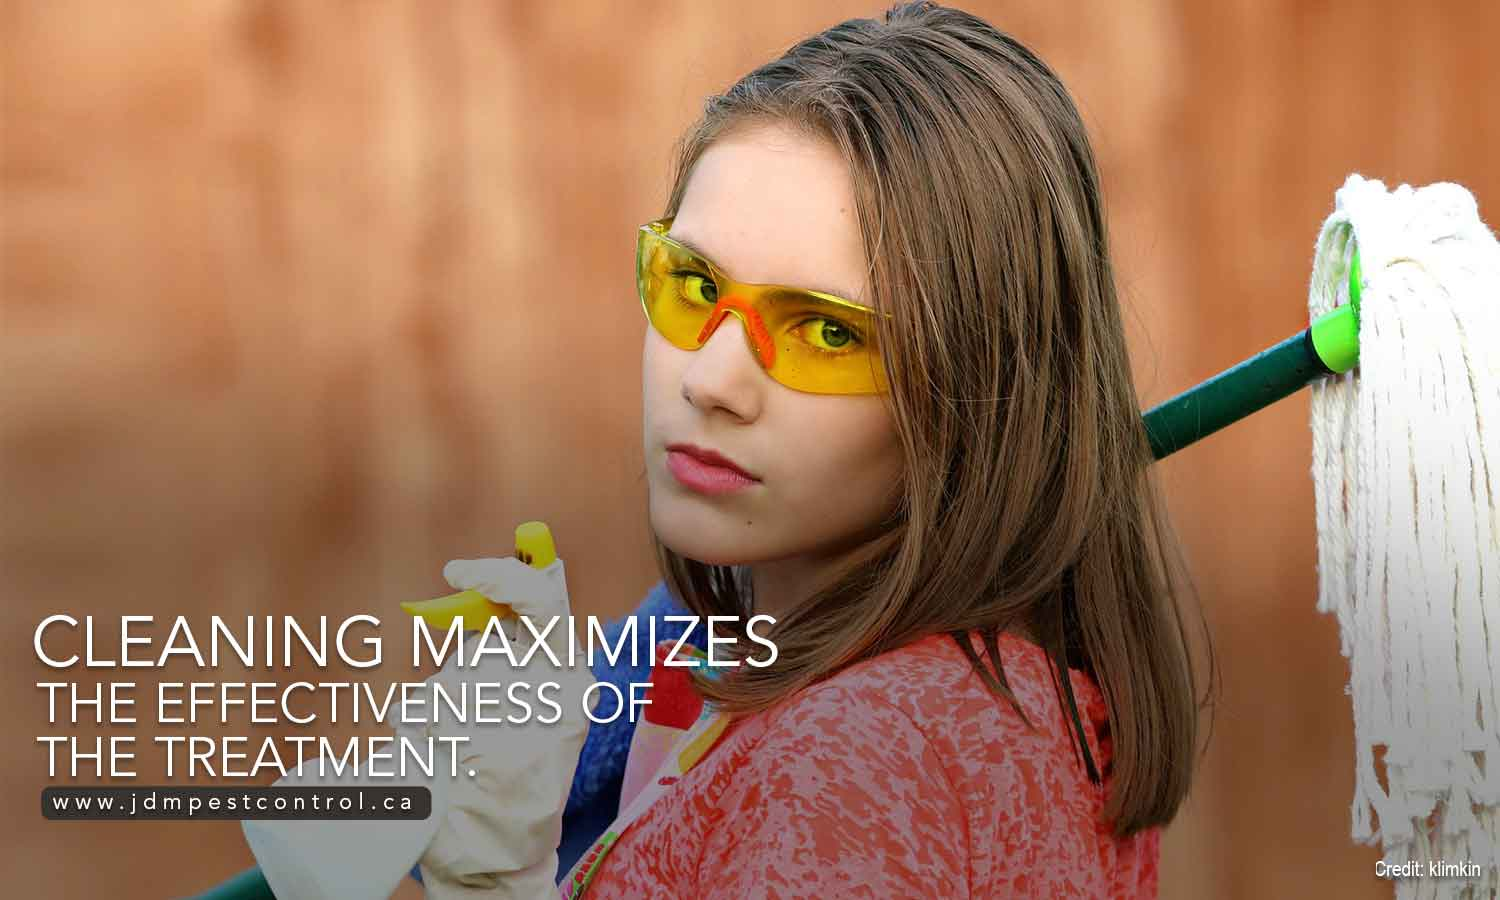 Cleaning maximizes the effectiveness of the treatment.